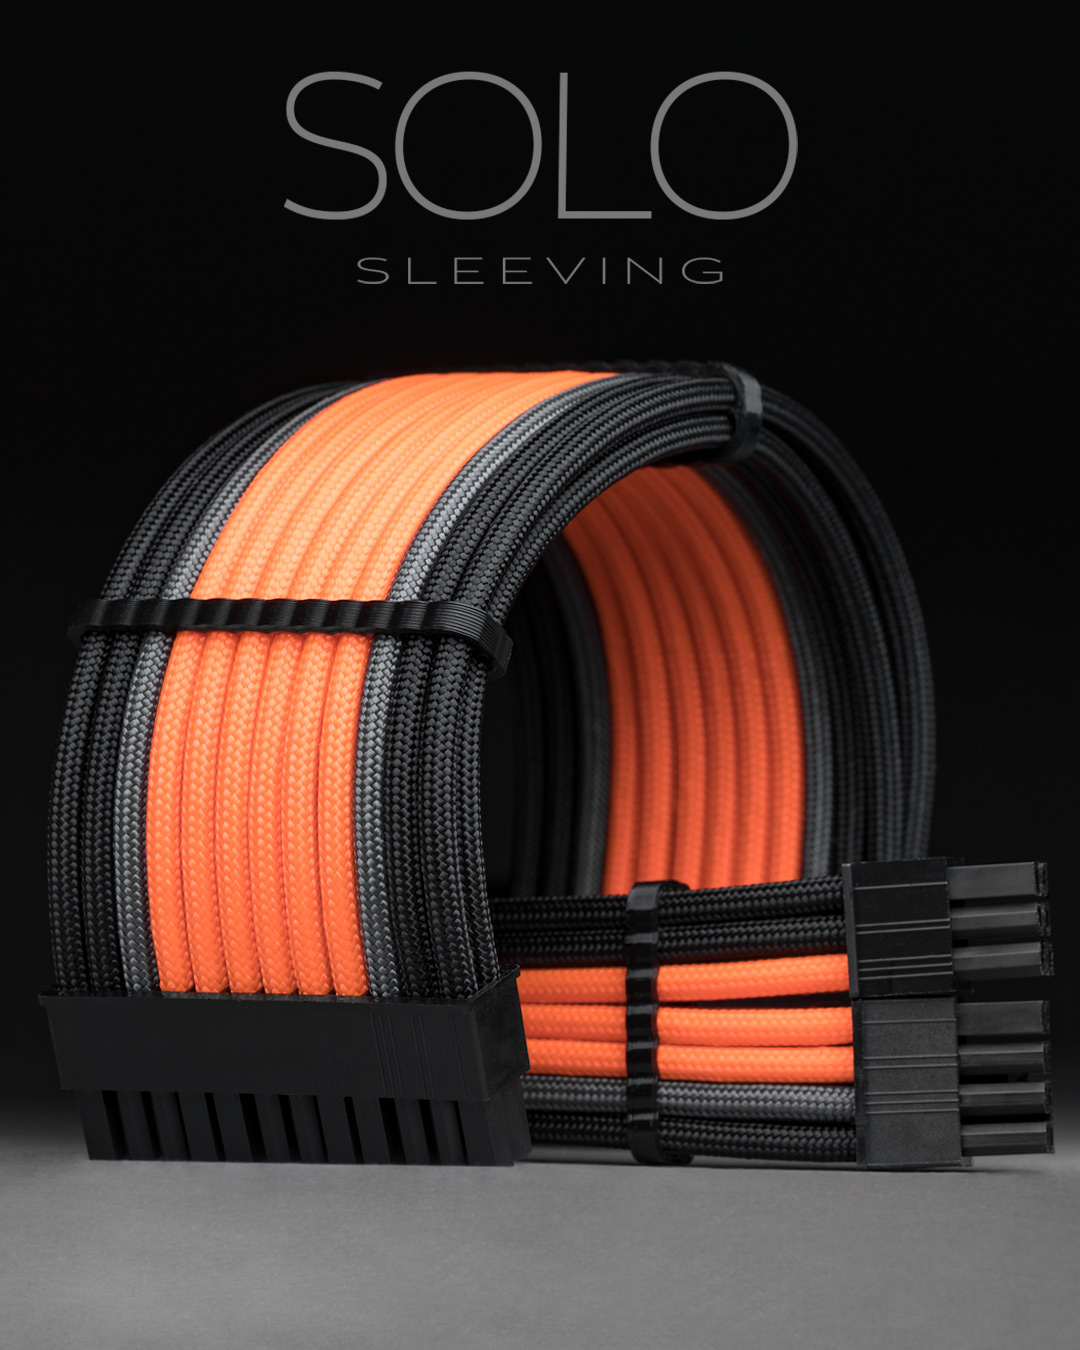 Orange and black paracord PC cable extensions